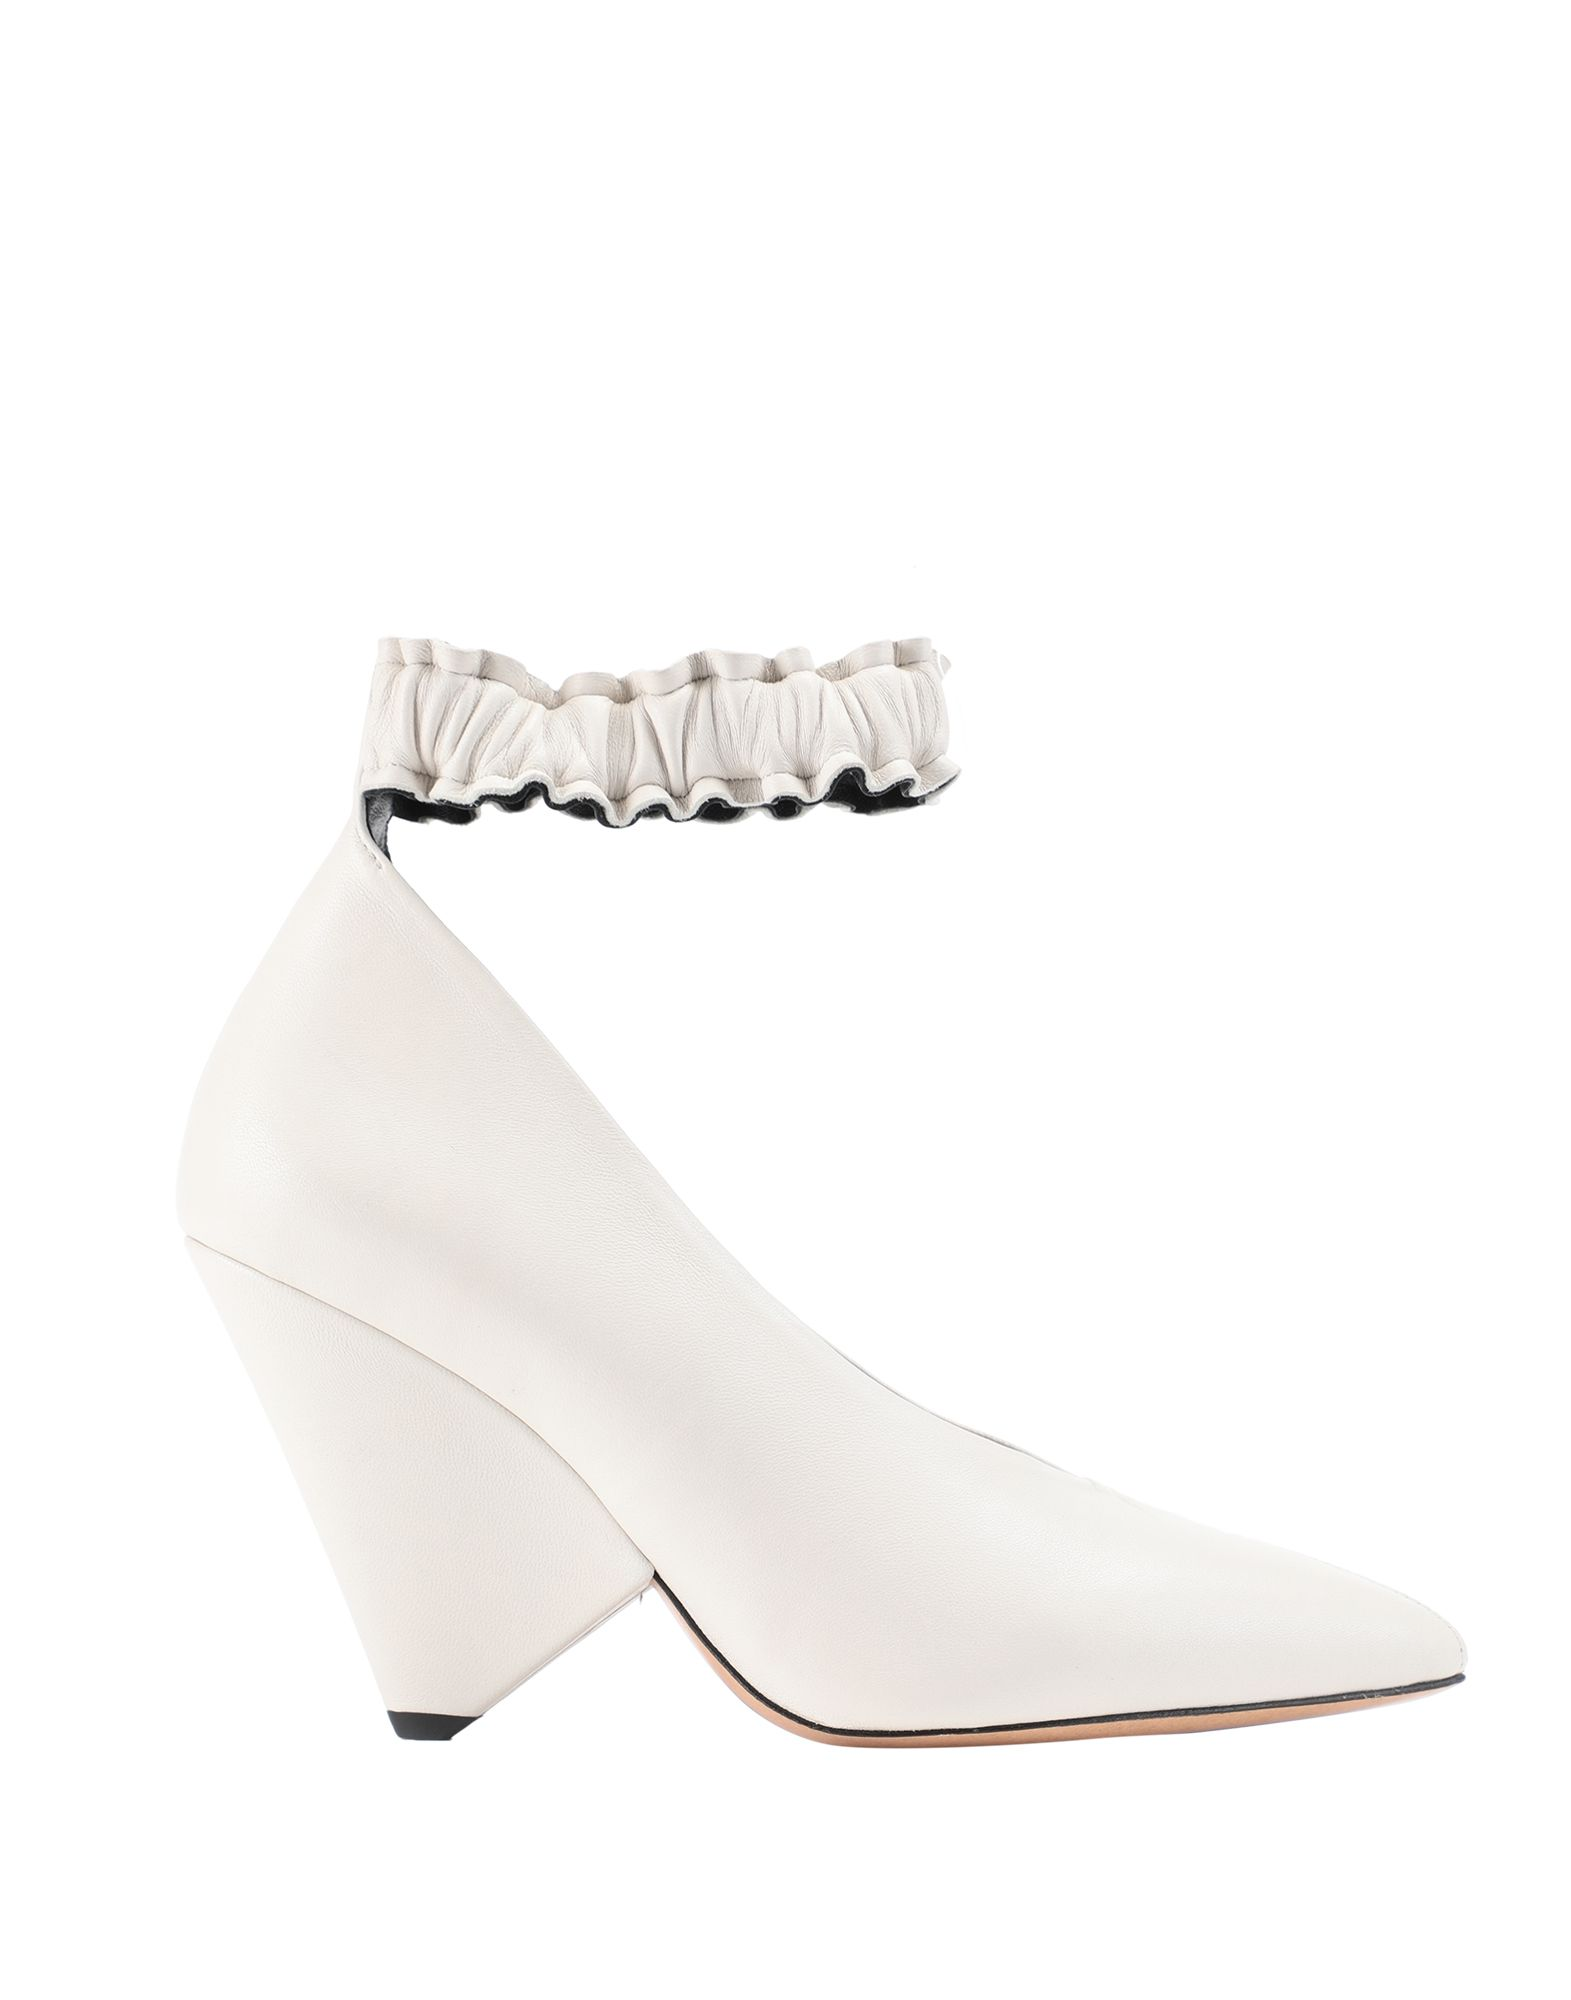 ISABEL MARANT Pumps. no appliqués, solid color, narrow toeline, cone heel, leather lining, leather sole, contains non-textile parts of animal origin, small sized. Goat skin